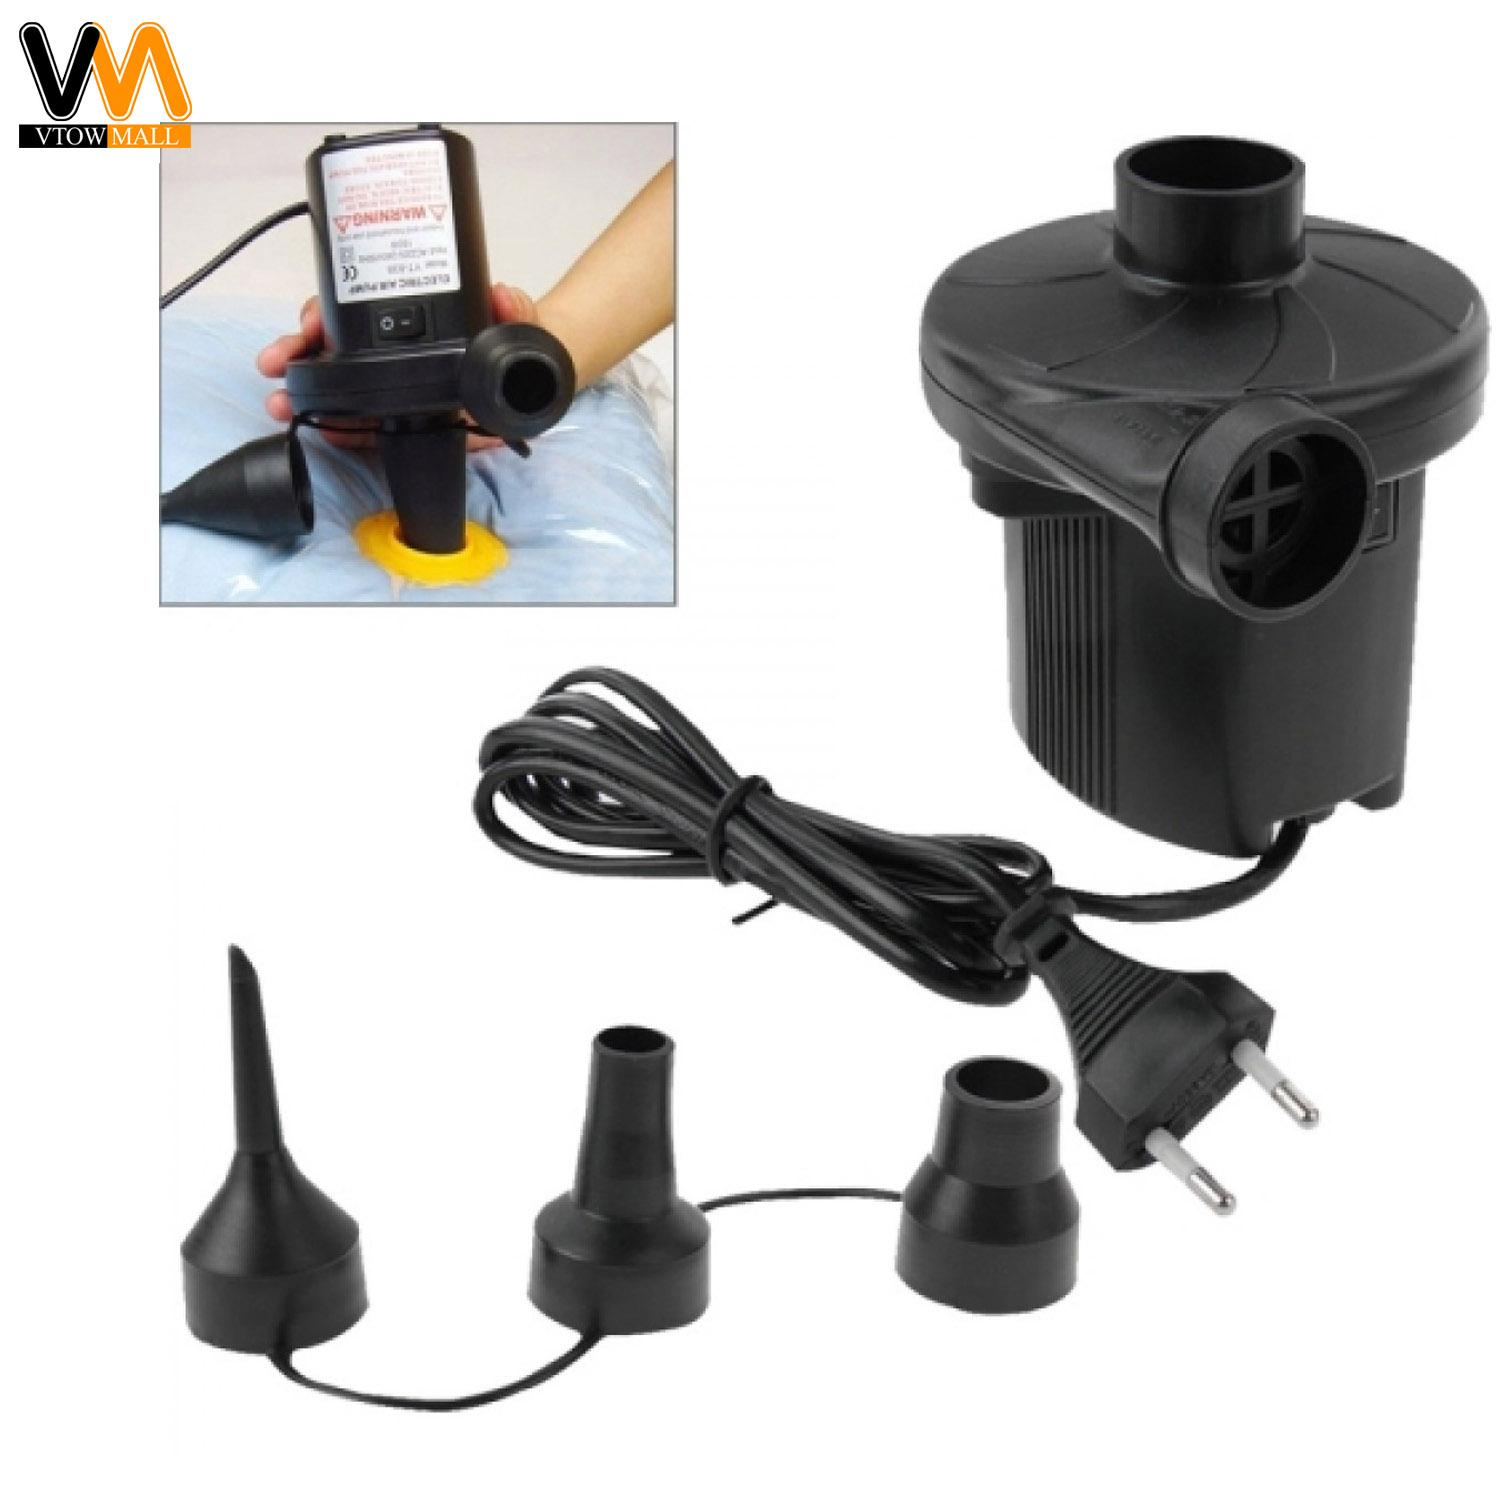 Ac Electric Air Pump Home Inflate Deflate For Air Mattress Air Bed 220v Us Plug By Vtow Cp Gadget.